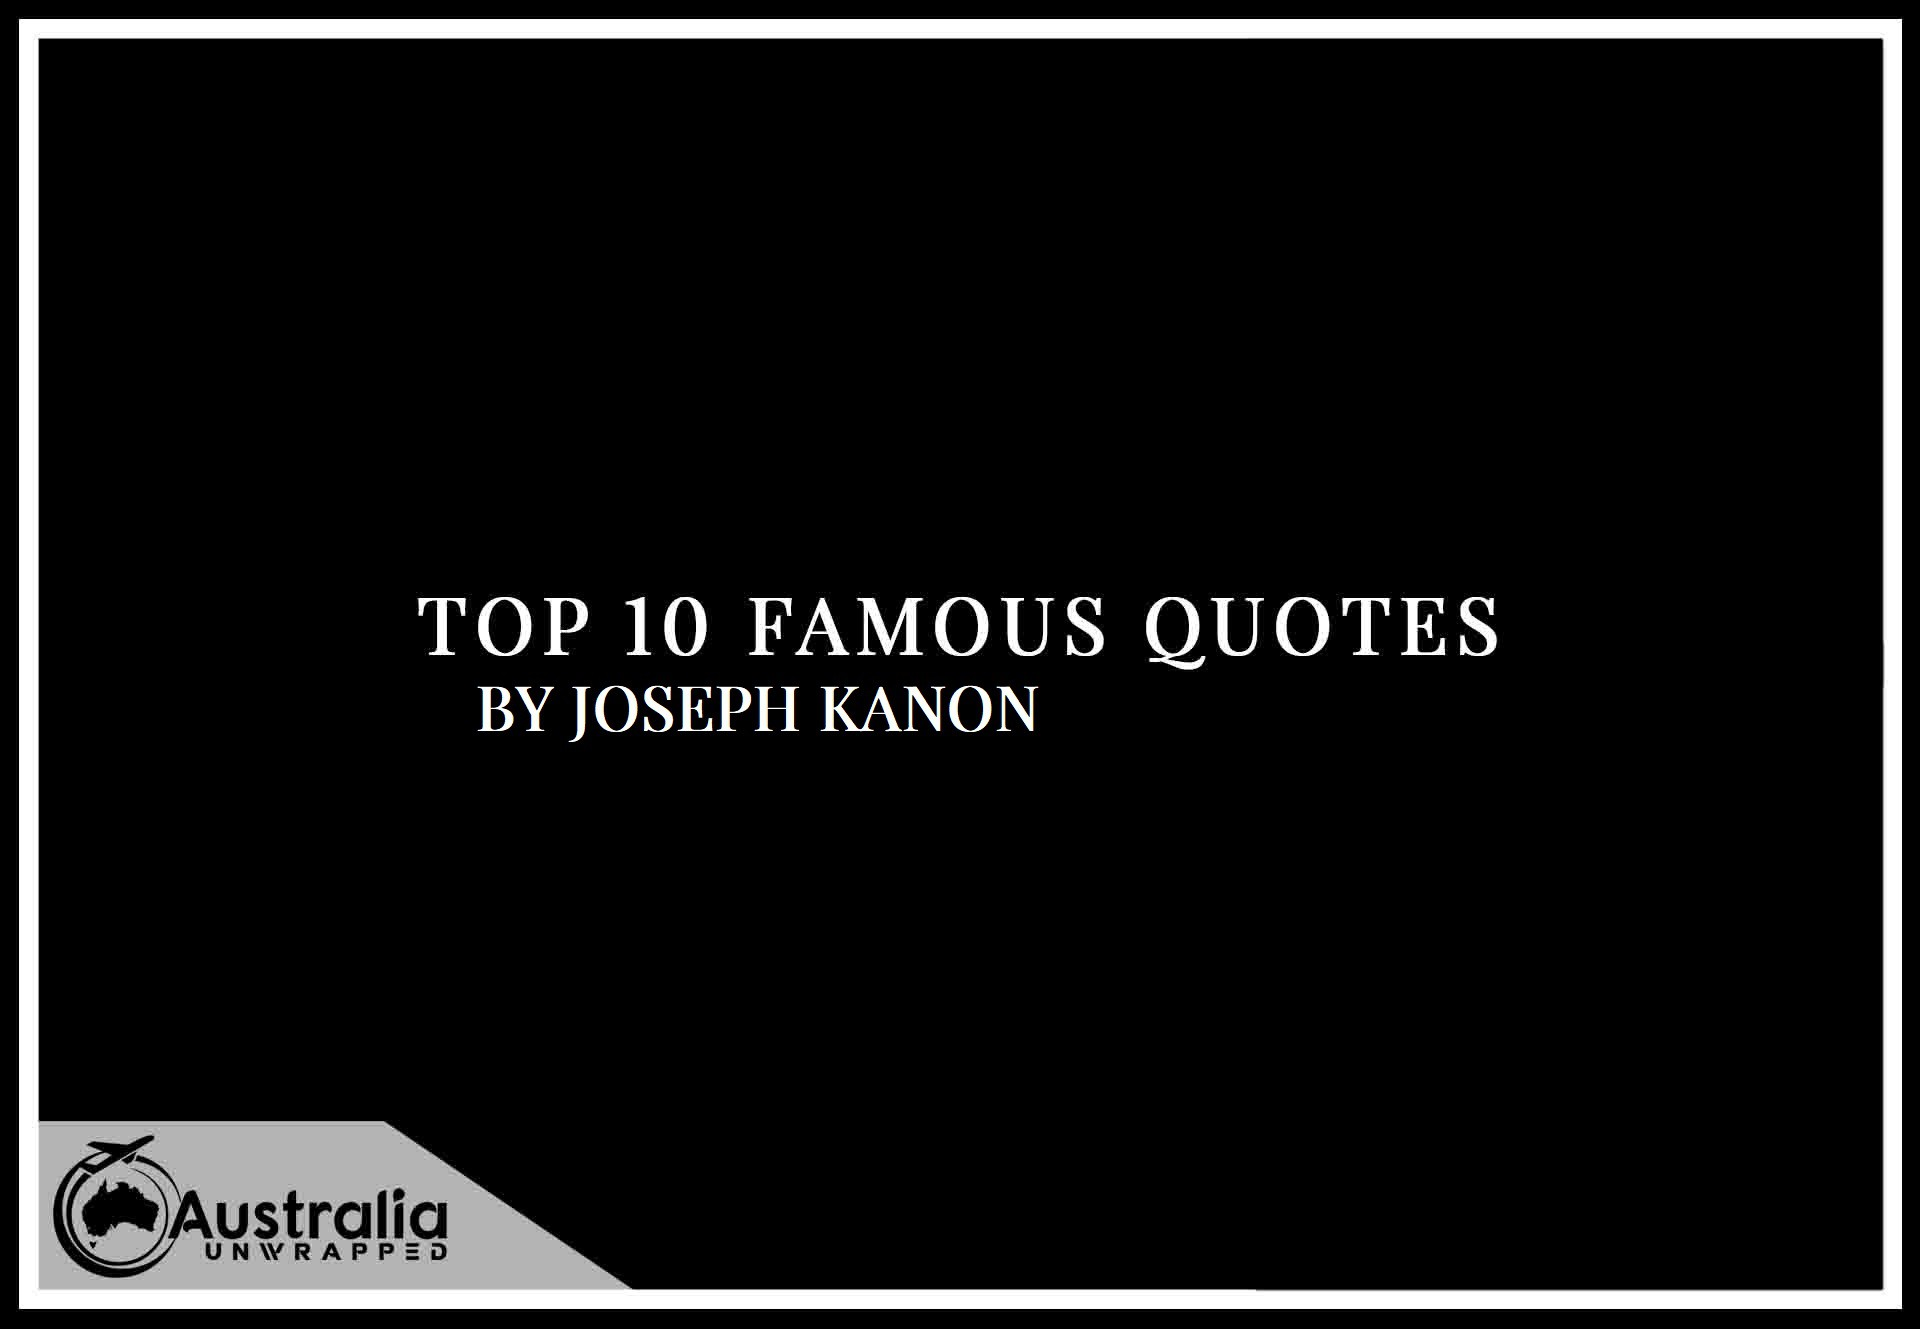 Top 10 Famous Quotes by Author Joseph Kanon